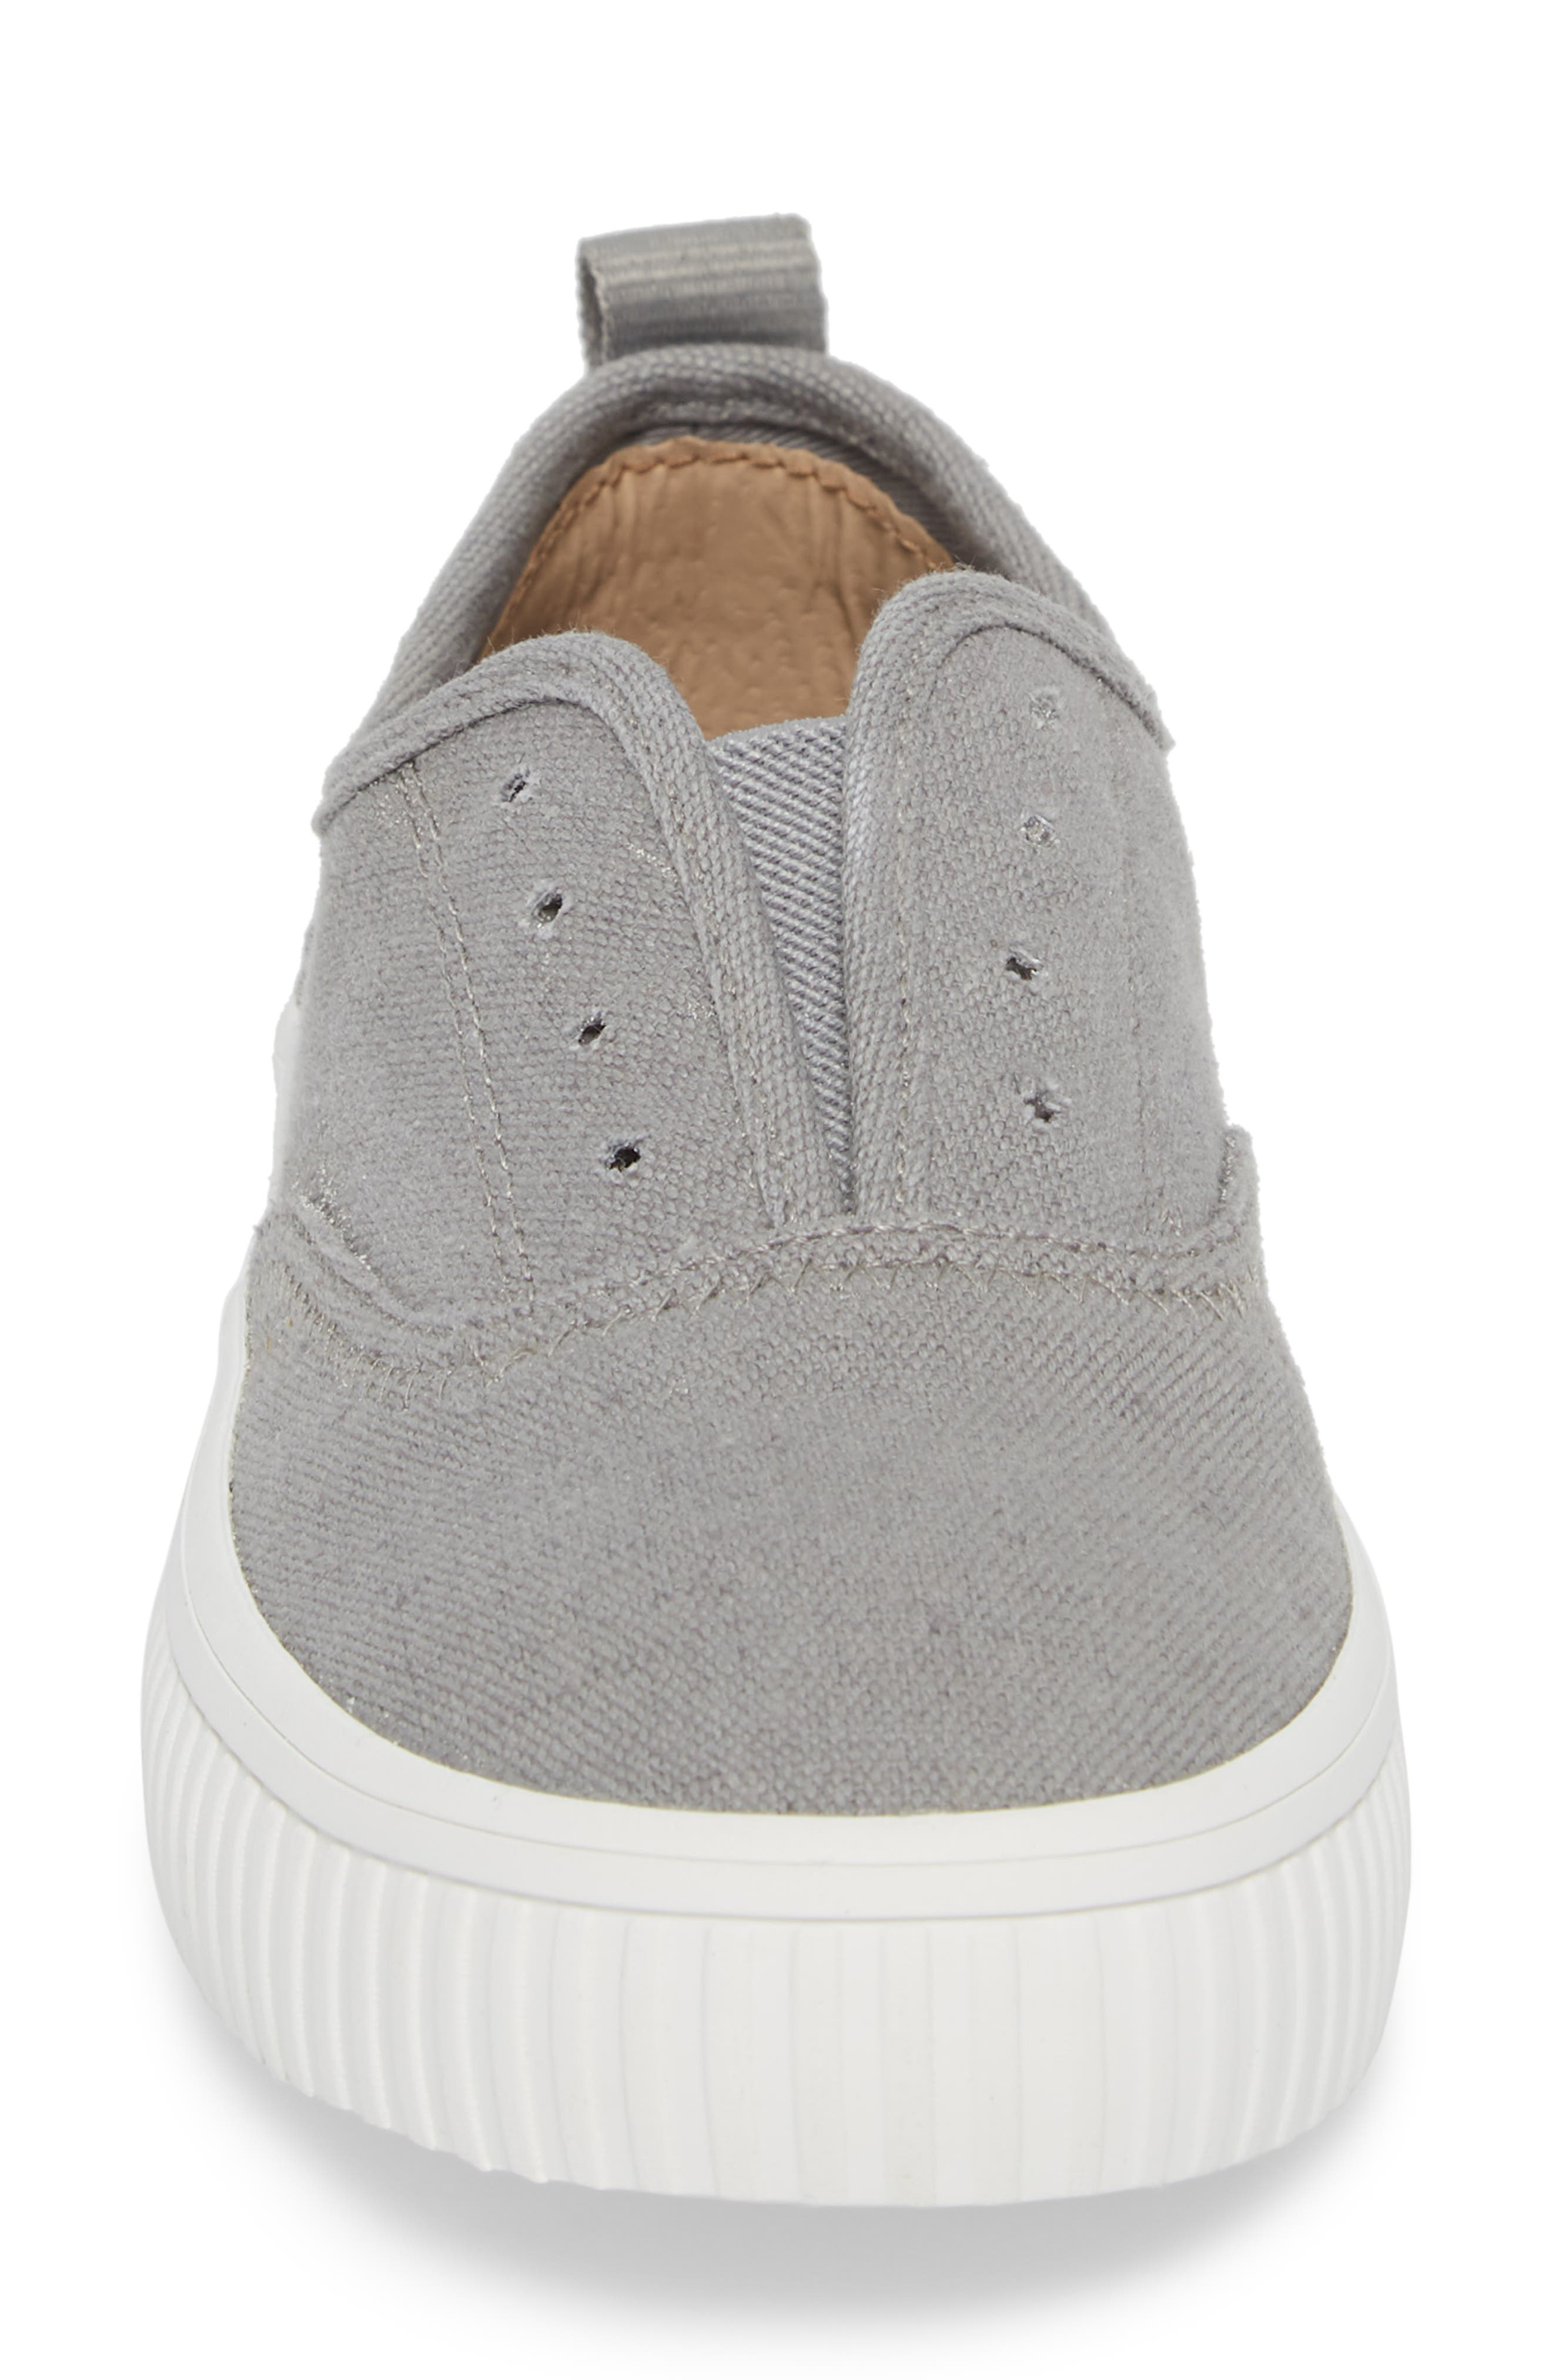 Crest Creeper CVO Slip-On Sneaker,                             Alternate thumbnail 4, color,                             020